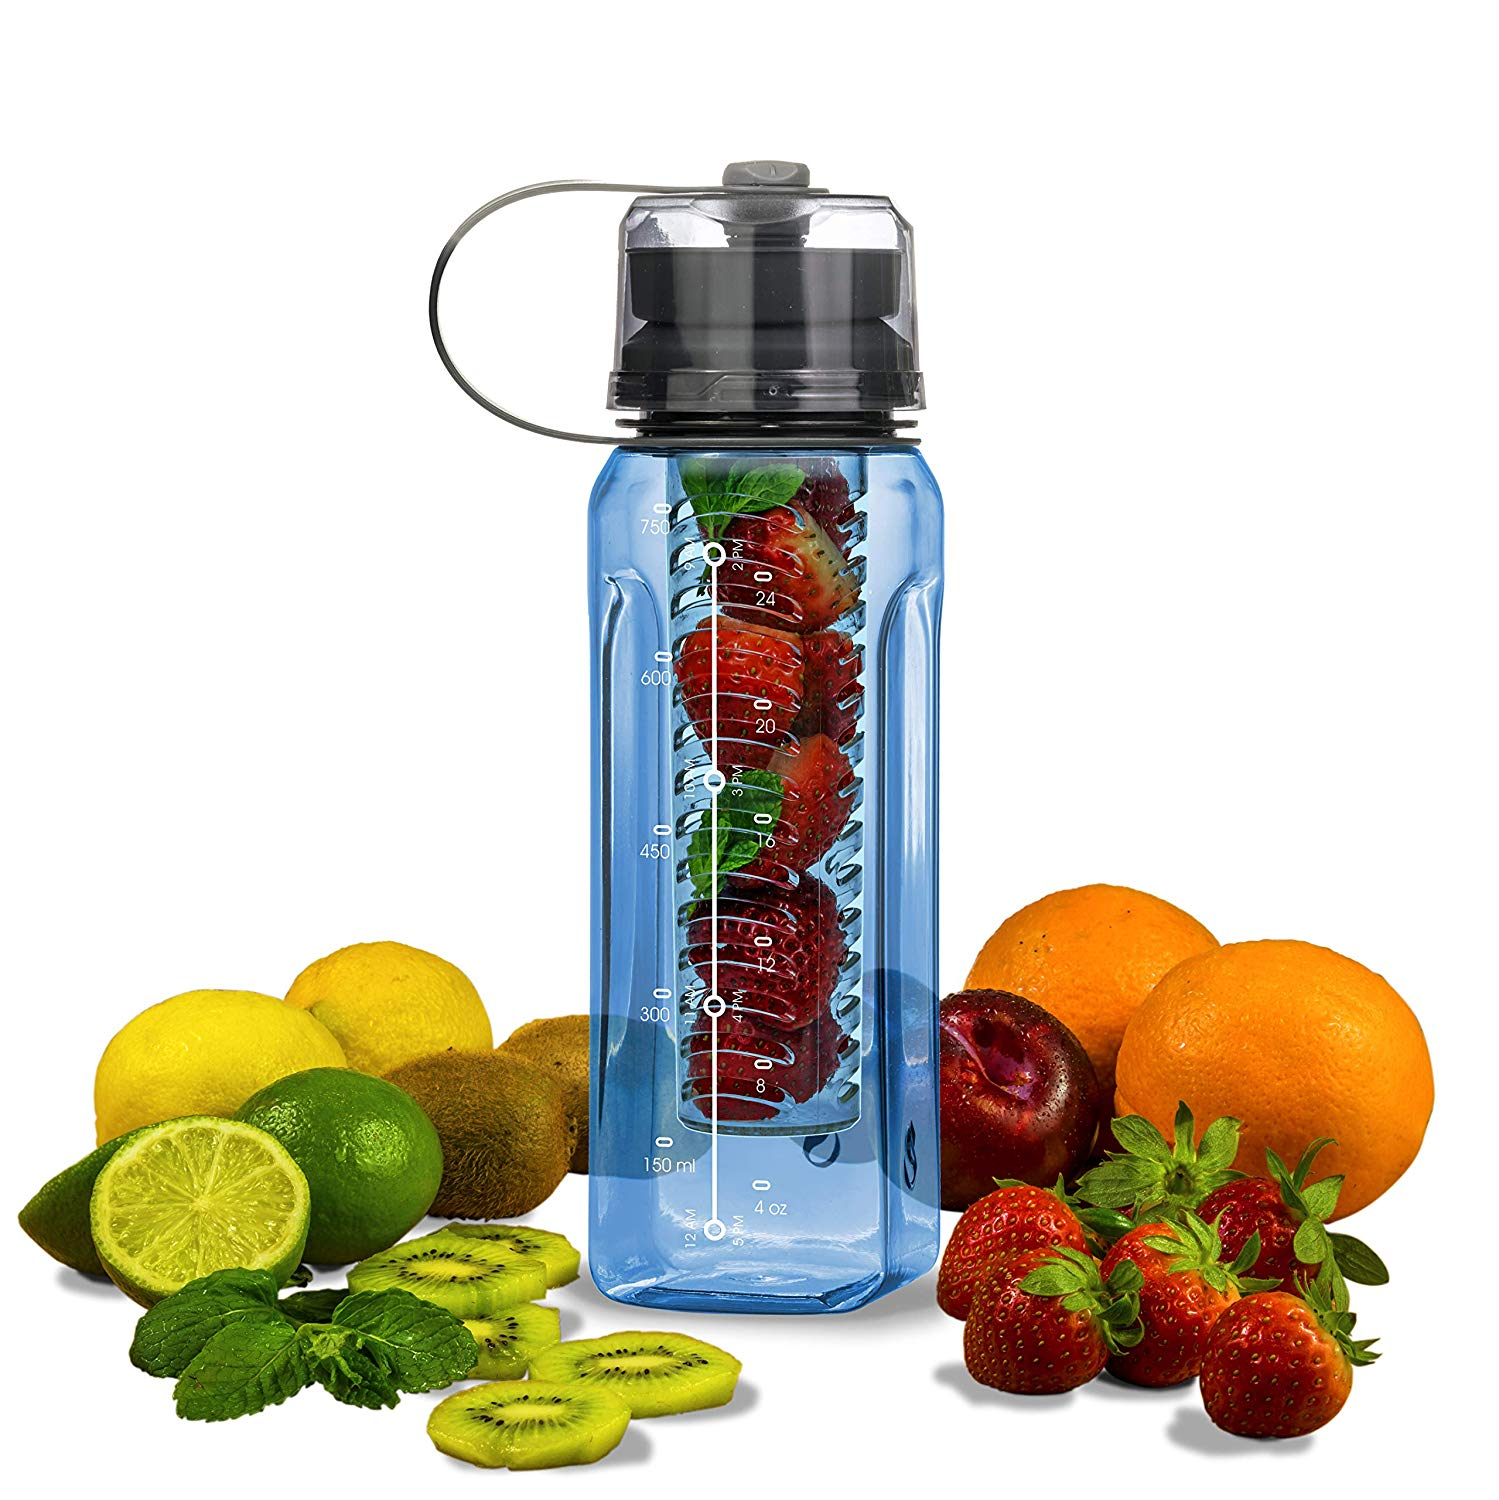 Fruit Infuser Tritan Material Water Bottle Filter Water Bottle BPA Free All-in-ONE Addition Water Cup /& Pill Box Addition - Bottle Carrier Cooler Blender Bottle Luxury Series